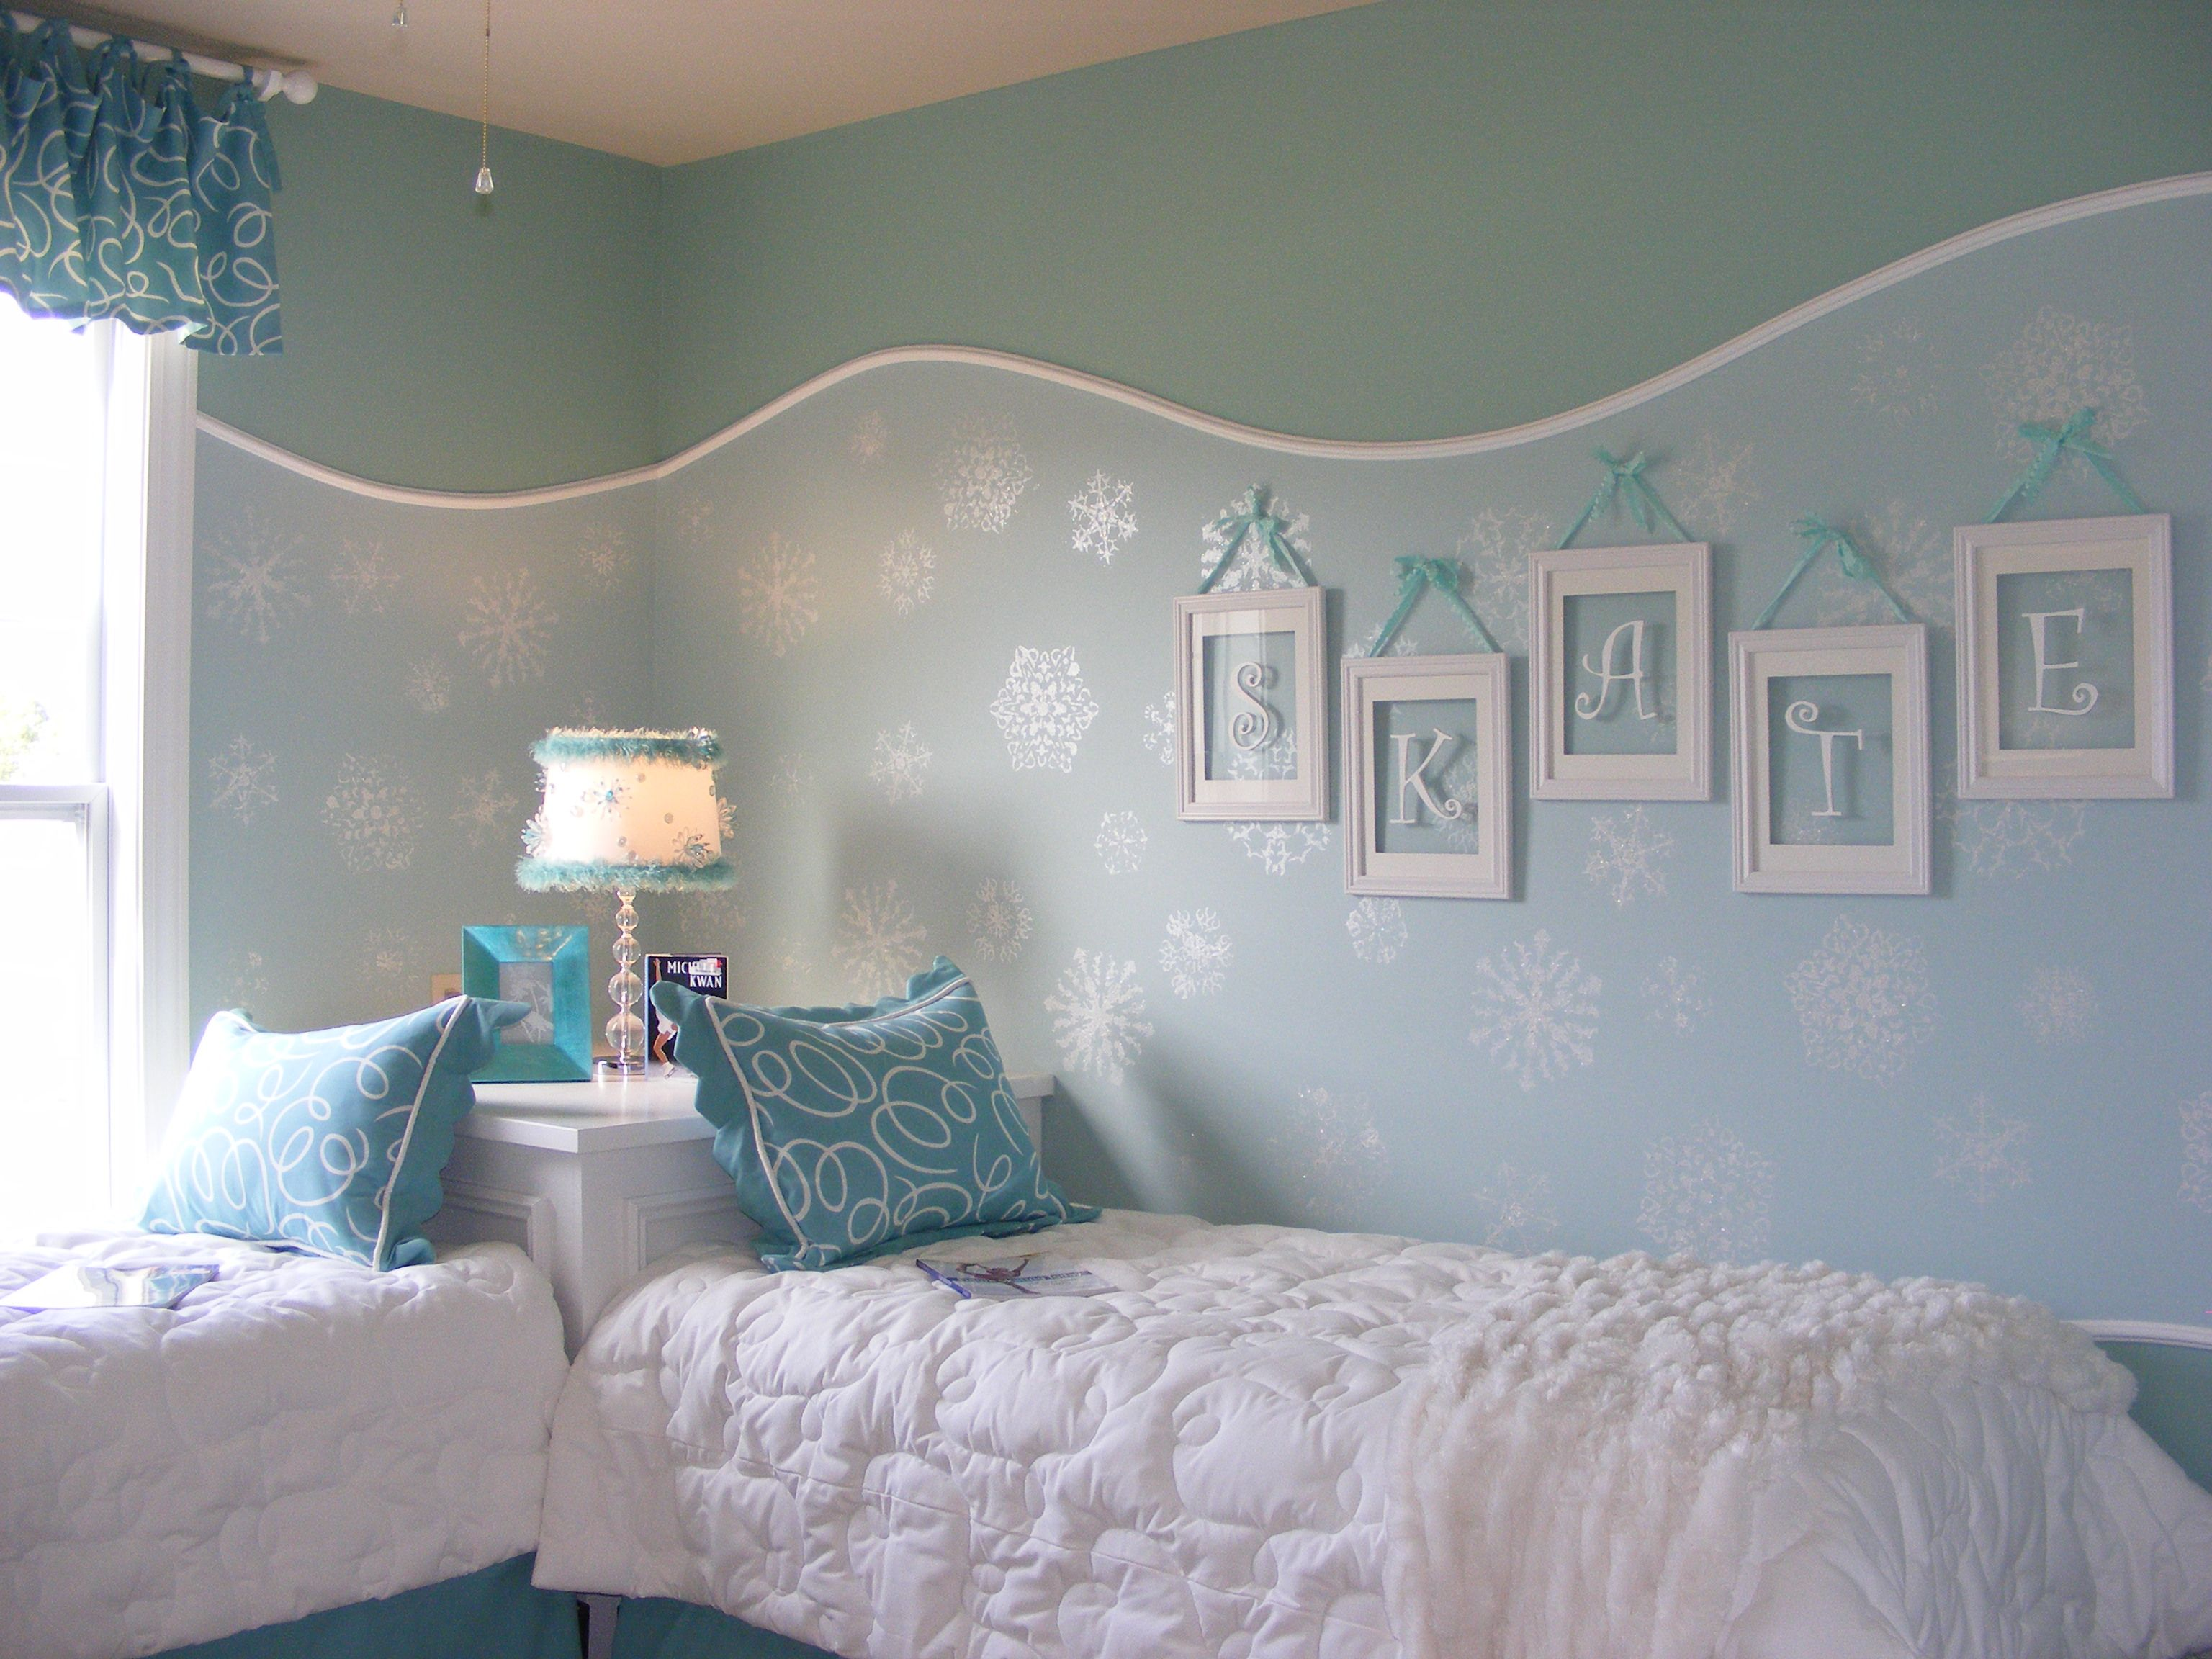 a design under themed decor room ideas frozen bedroom bedrooms interior creative decorating exterior amazing home decorations table